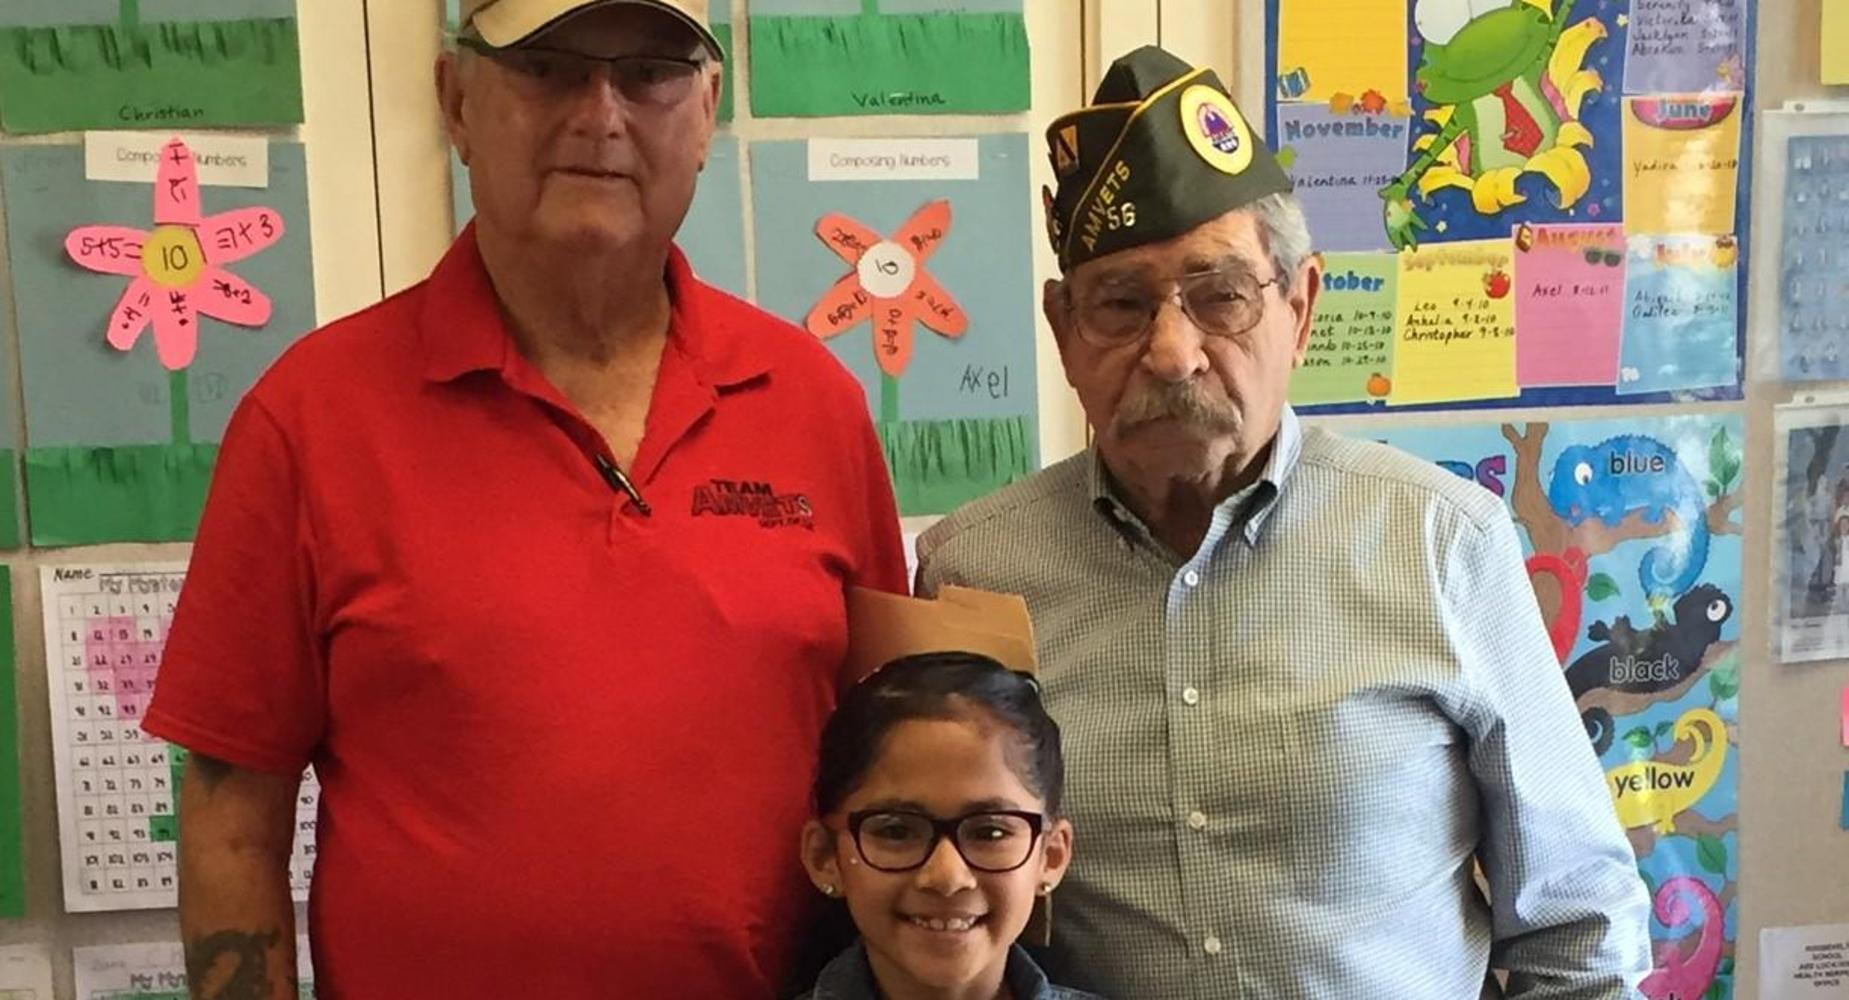 Roosevelt Student posing with two veterans.